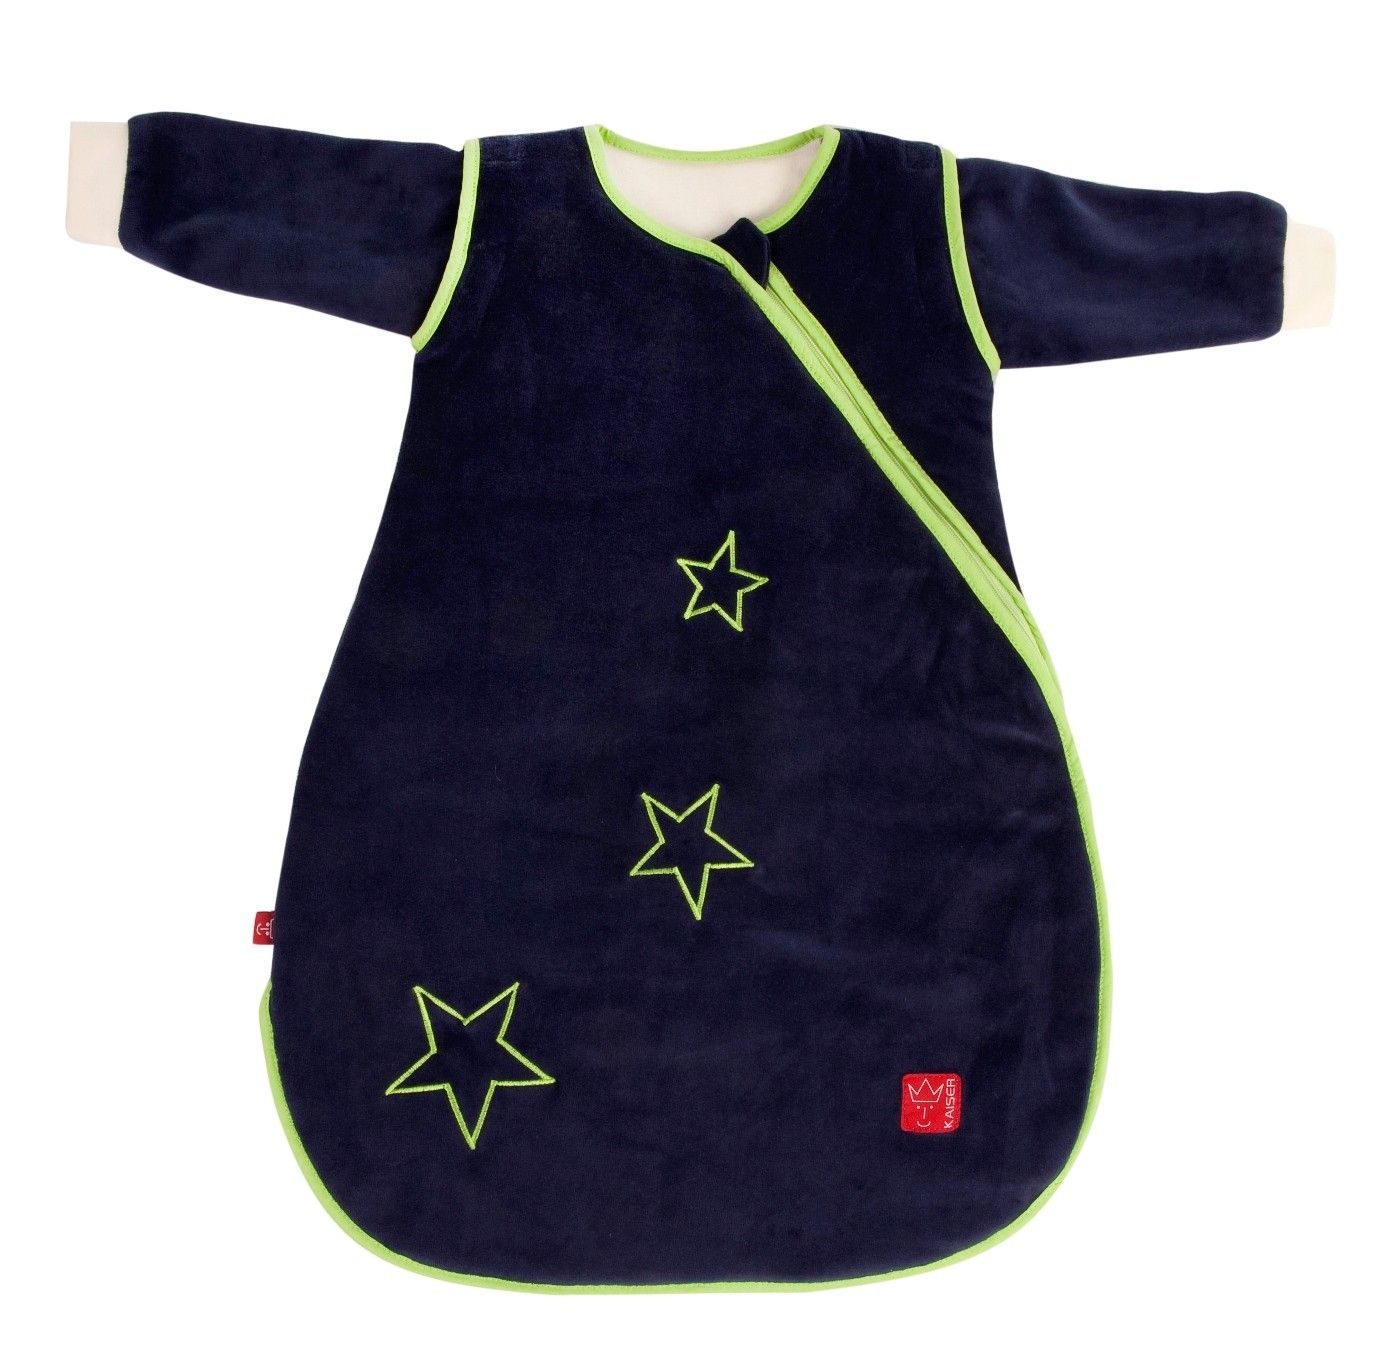 Image of   Helårs sovepose fra Kaiser - Nicki STAR - Navy (Öko-Tex)